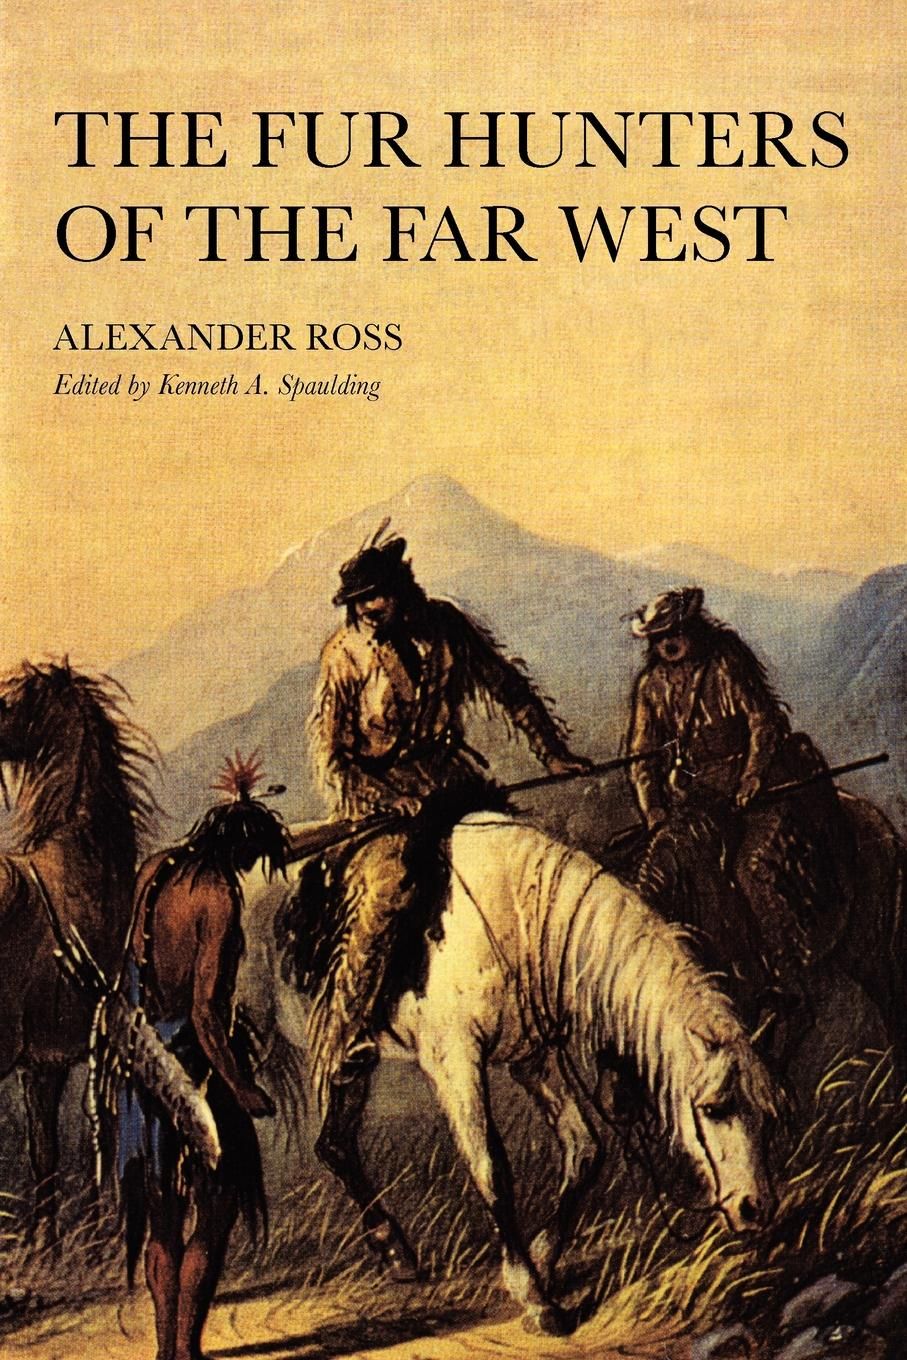 Alexander Ross The Fur Hunters of the Far West charles richard tuttle the centennial northwest an illustrated history of the northwest being a full and complete civil political and military history of this great section of the united states from its earliest settlement to the present time